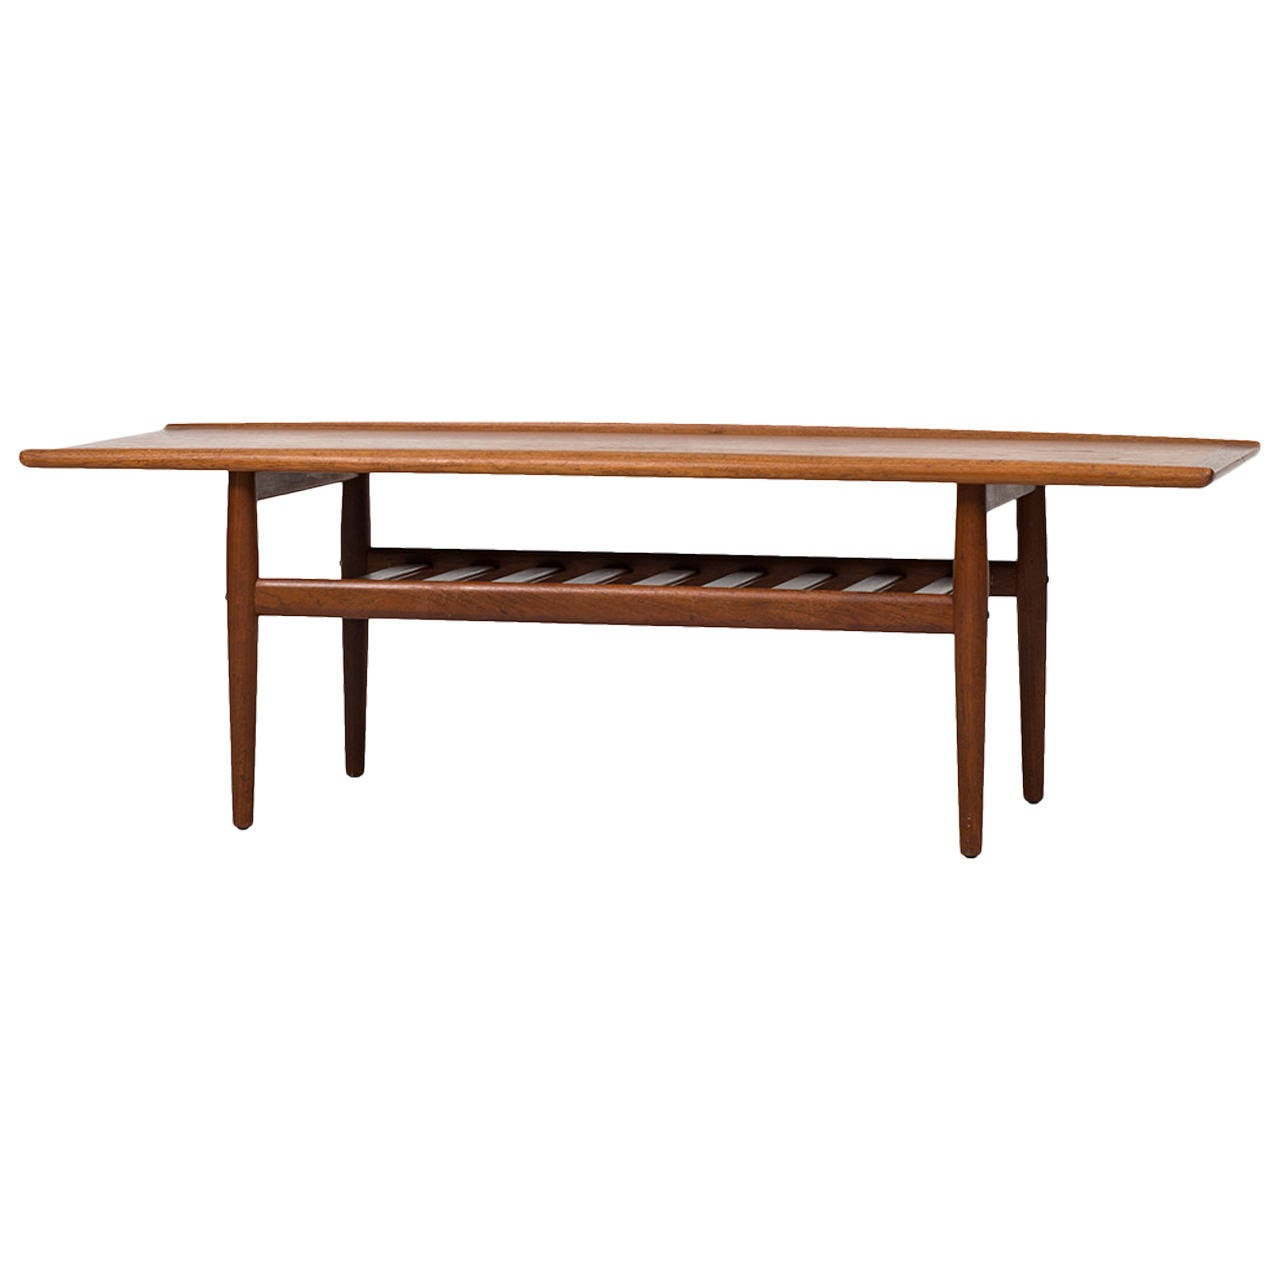 Grete Jalk Coffee Table in Teak by Glostrup Møbelfabrik in Denmark For Sale